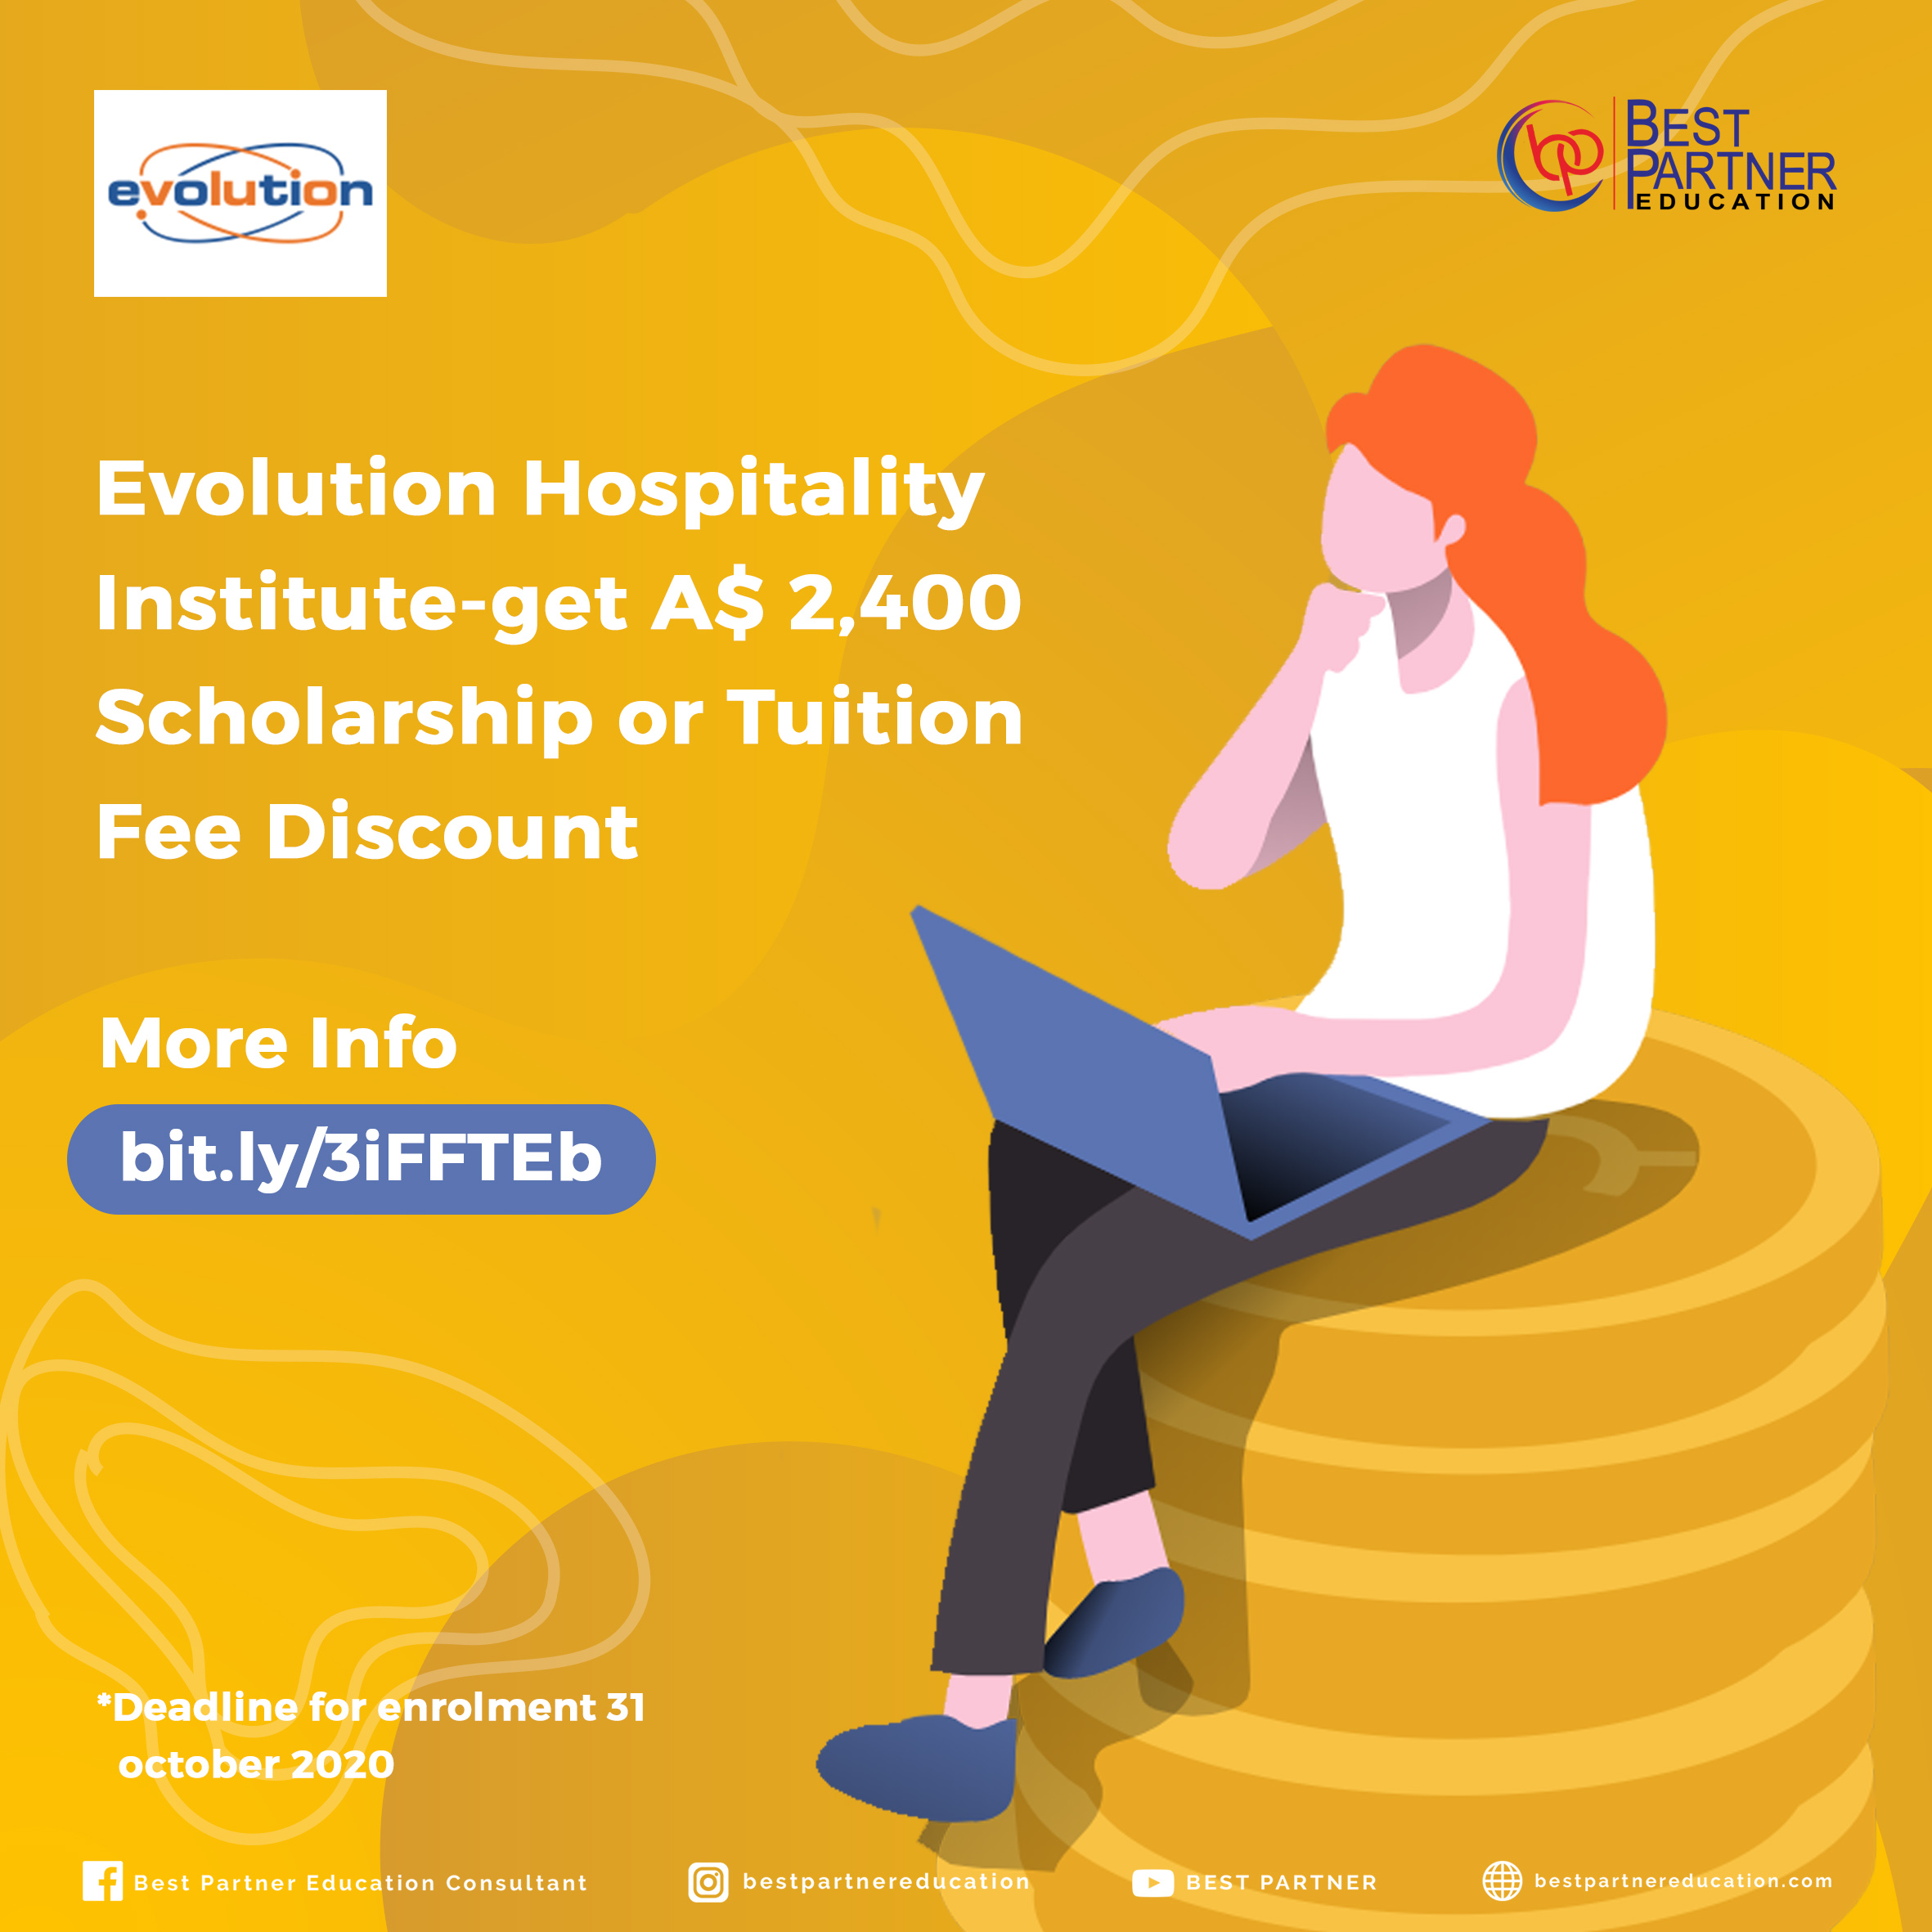 Evolution Hospitality Institute-get A$ 2,400 scholarship or tuition fee discount